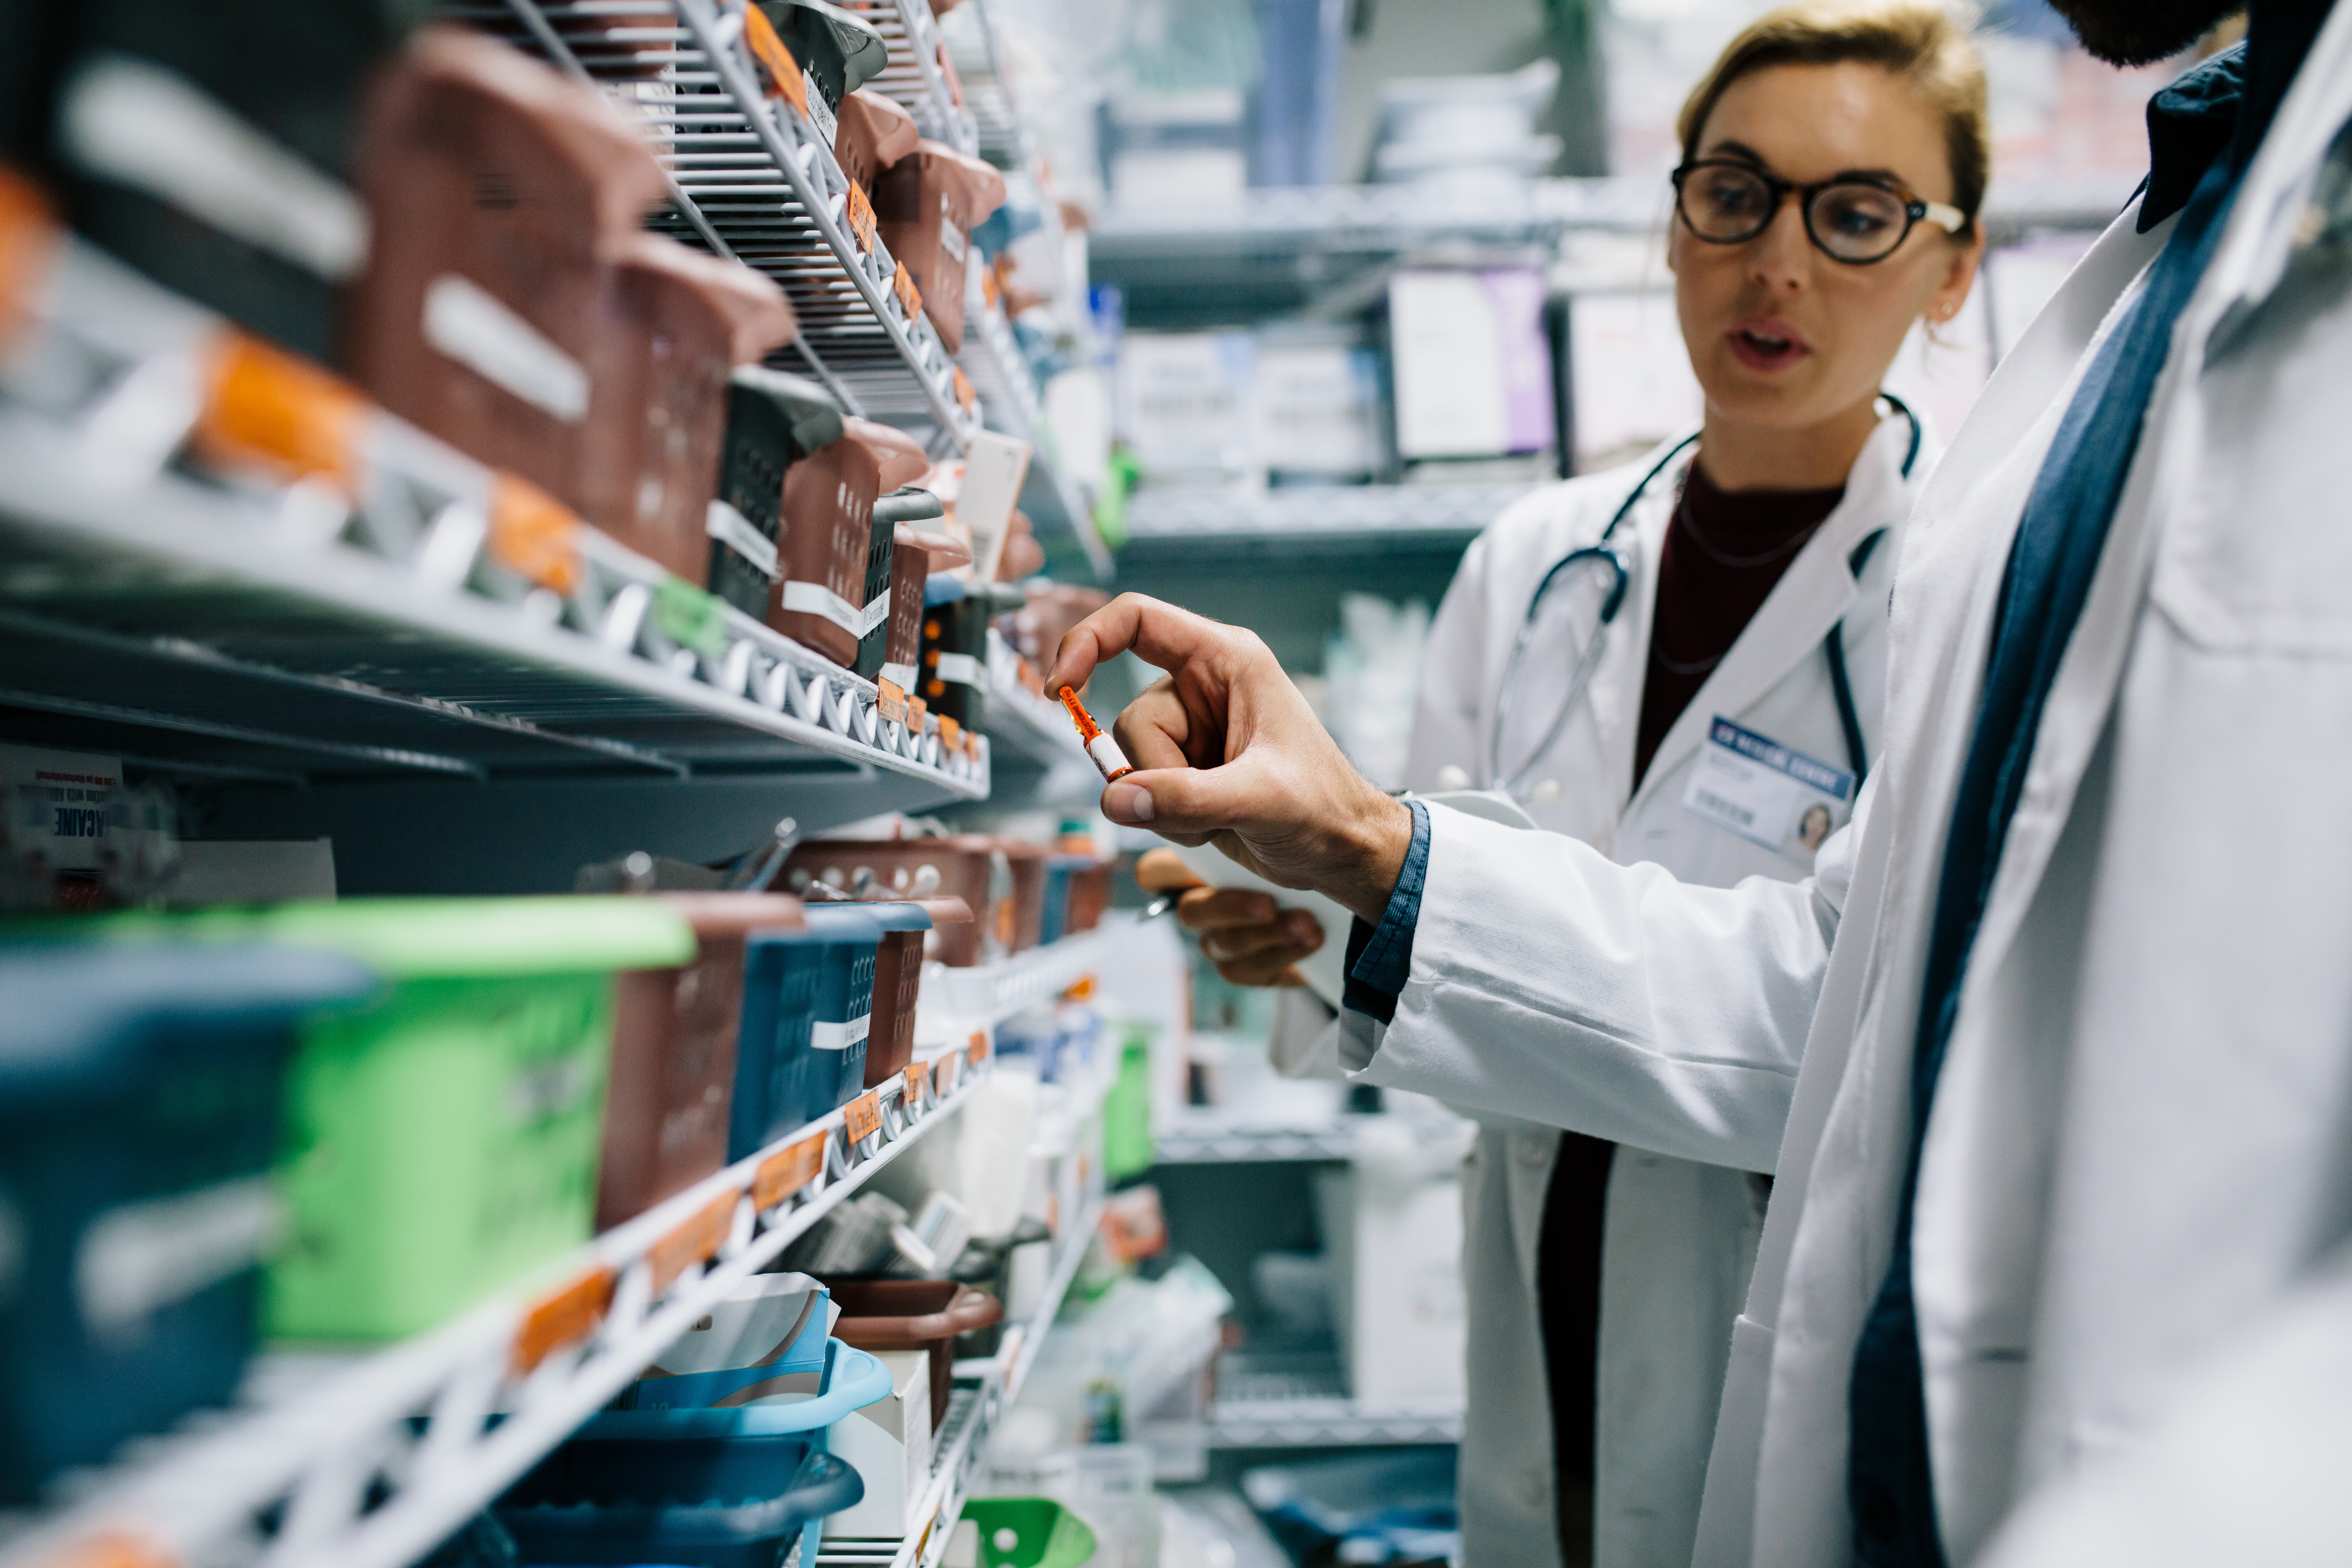 What Has it Been Like Working in a Pharmacy?